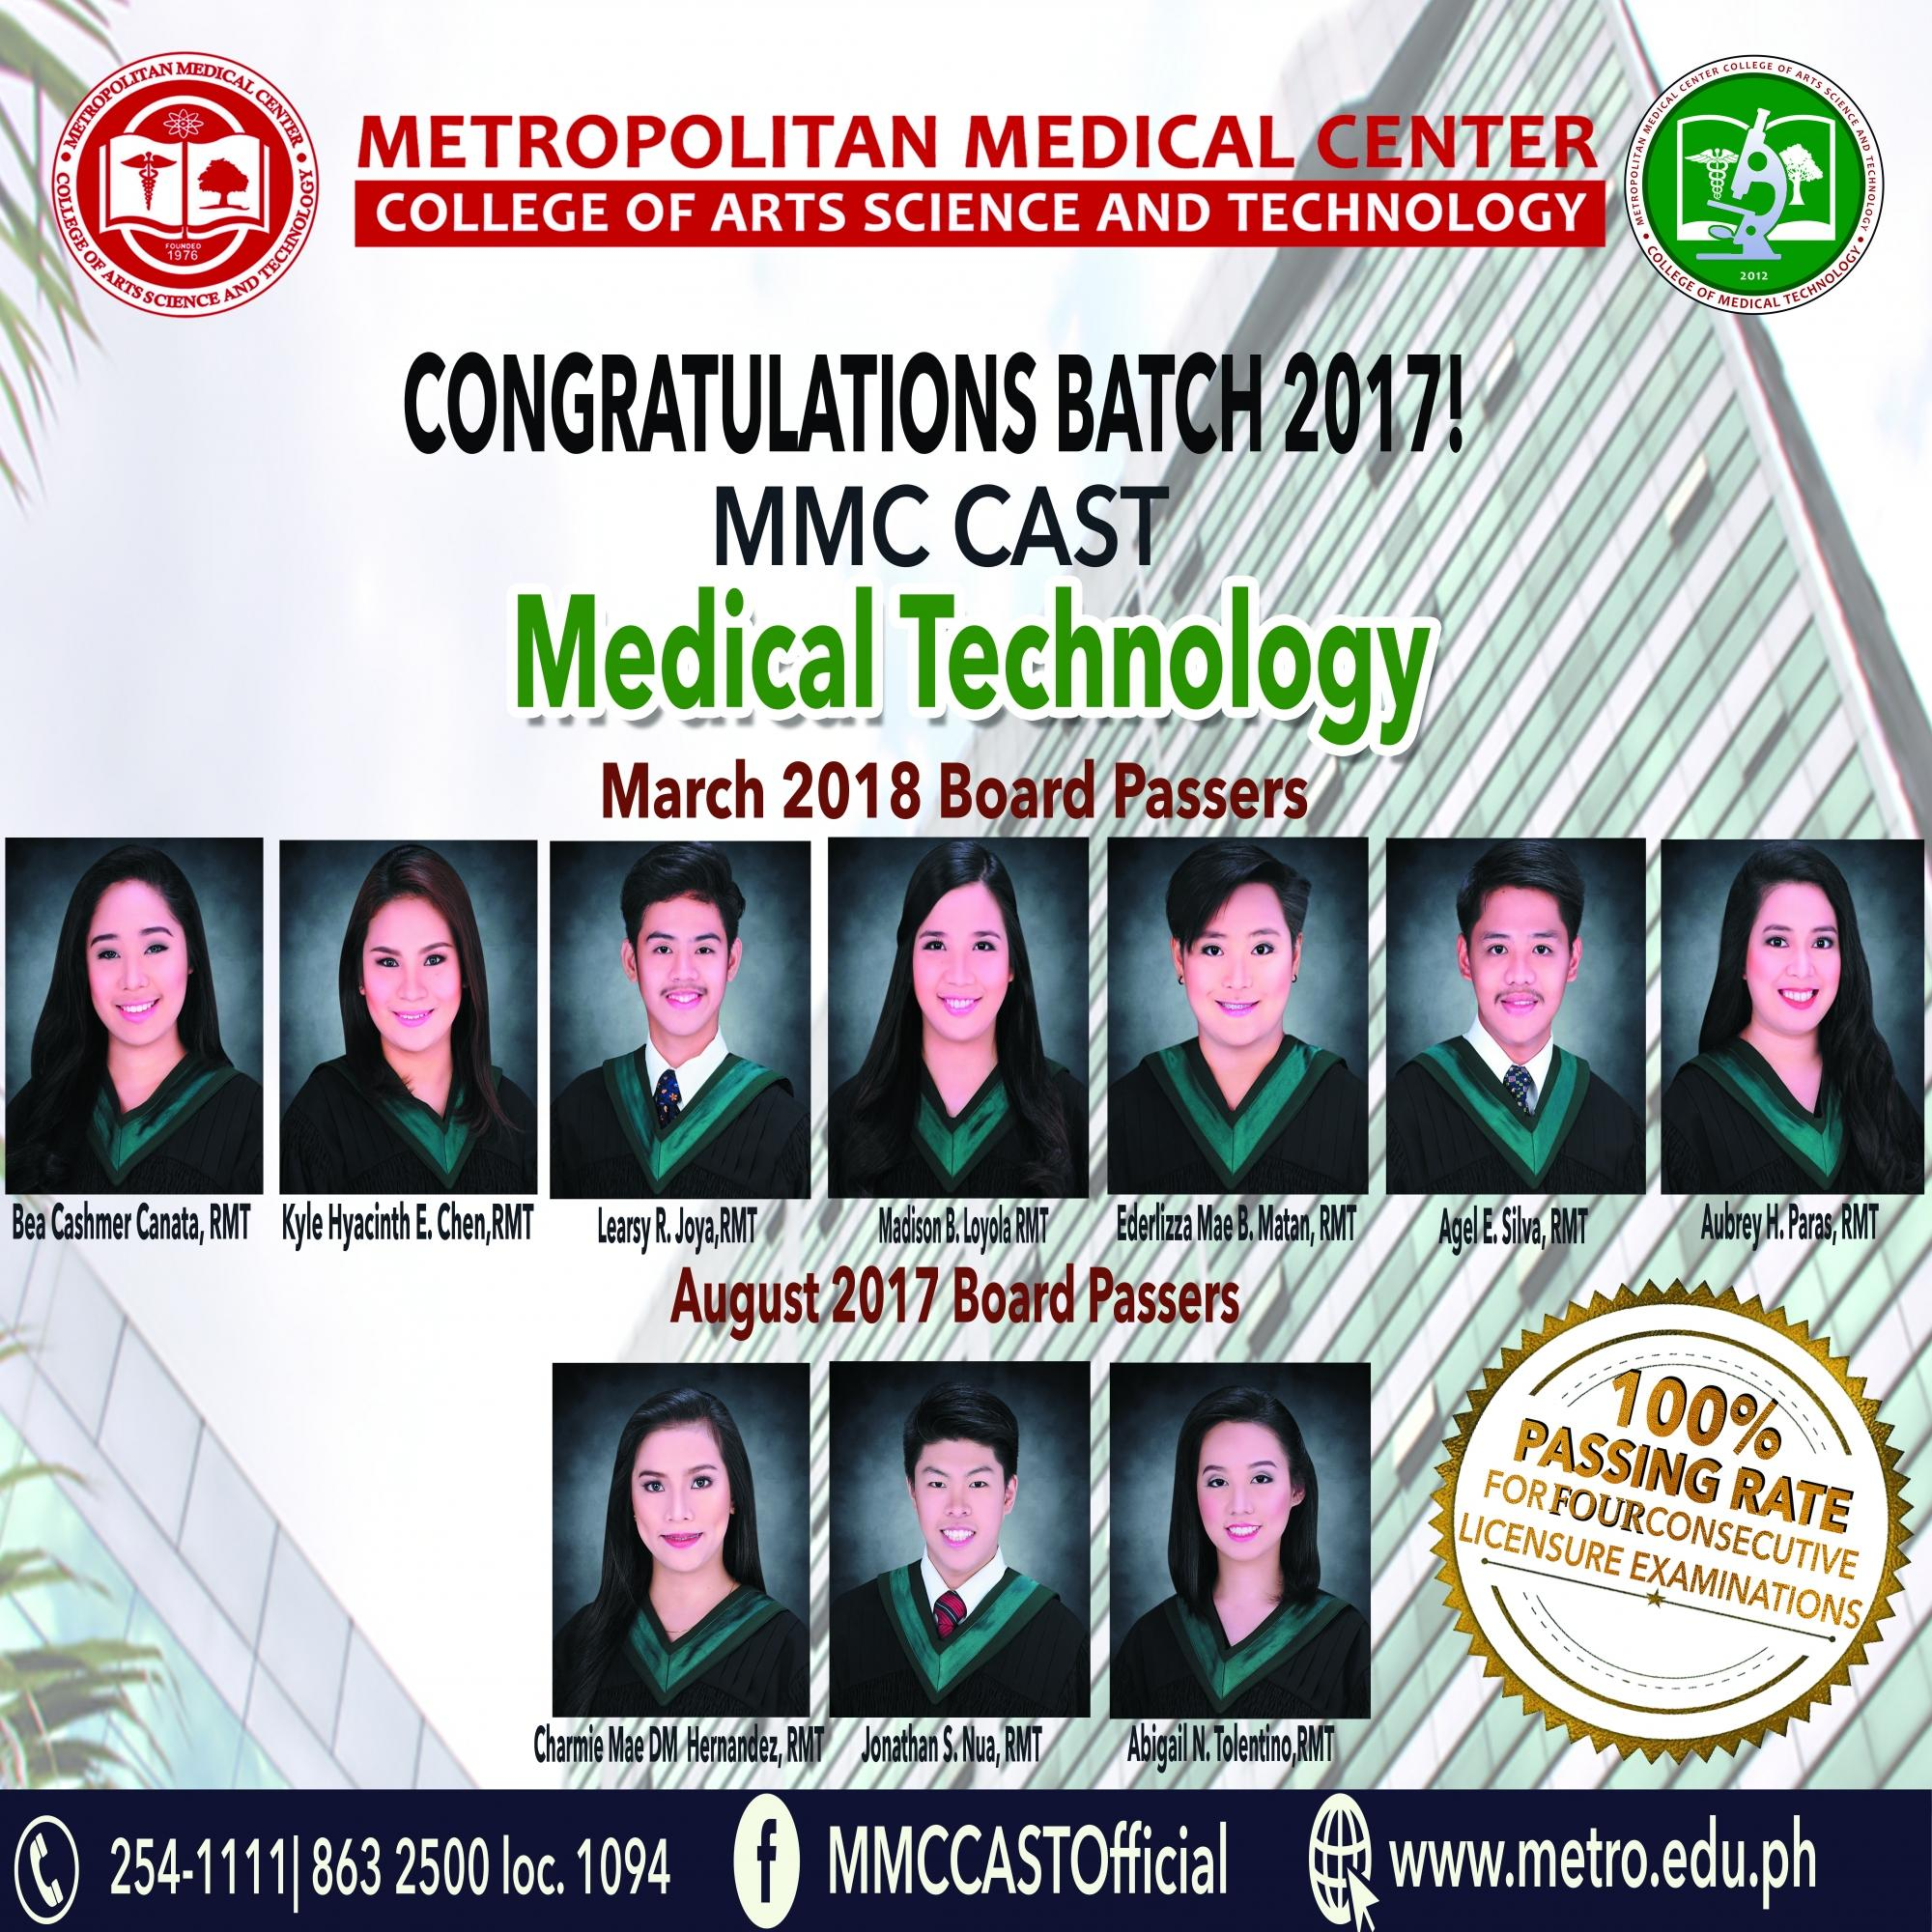 MEDTECH LAYOUT.jpg